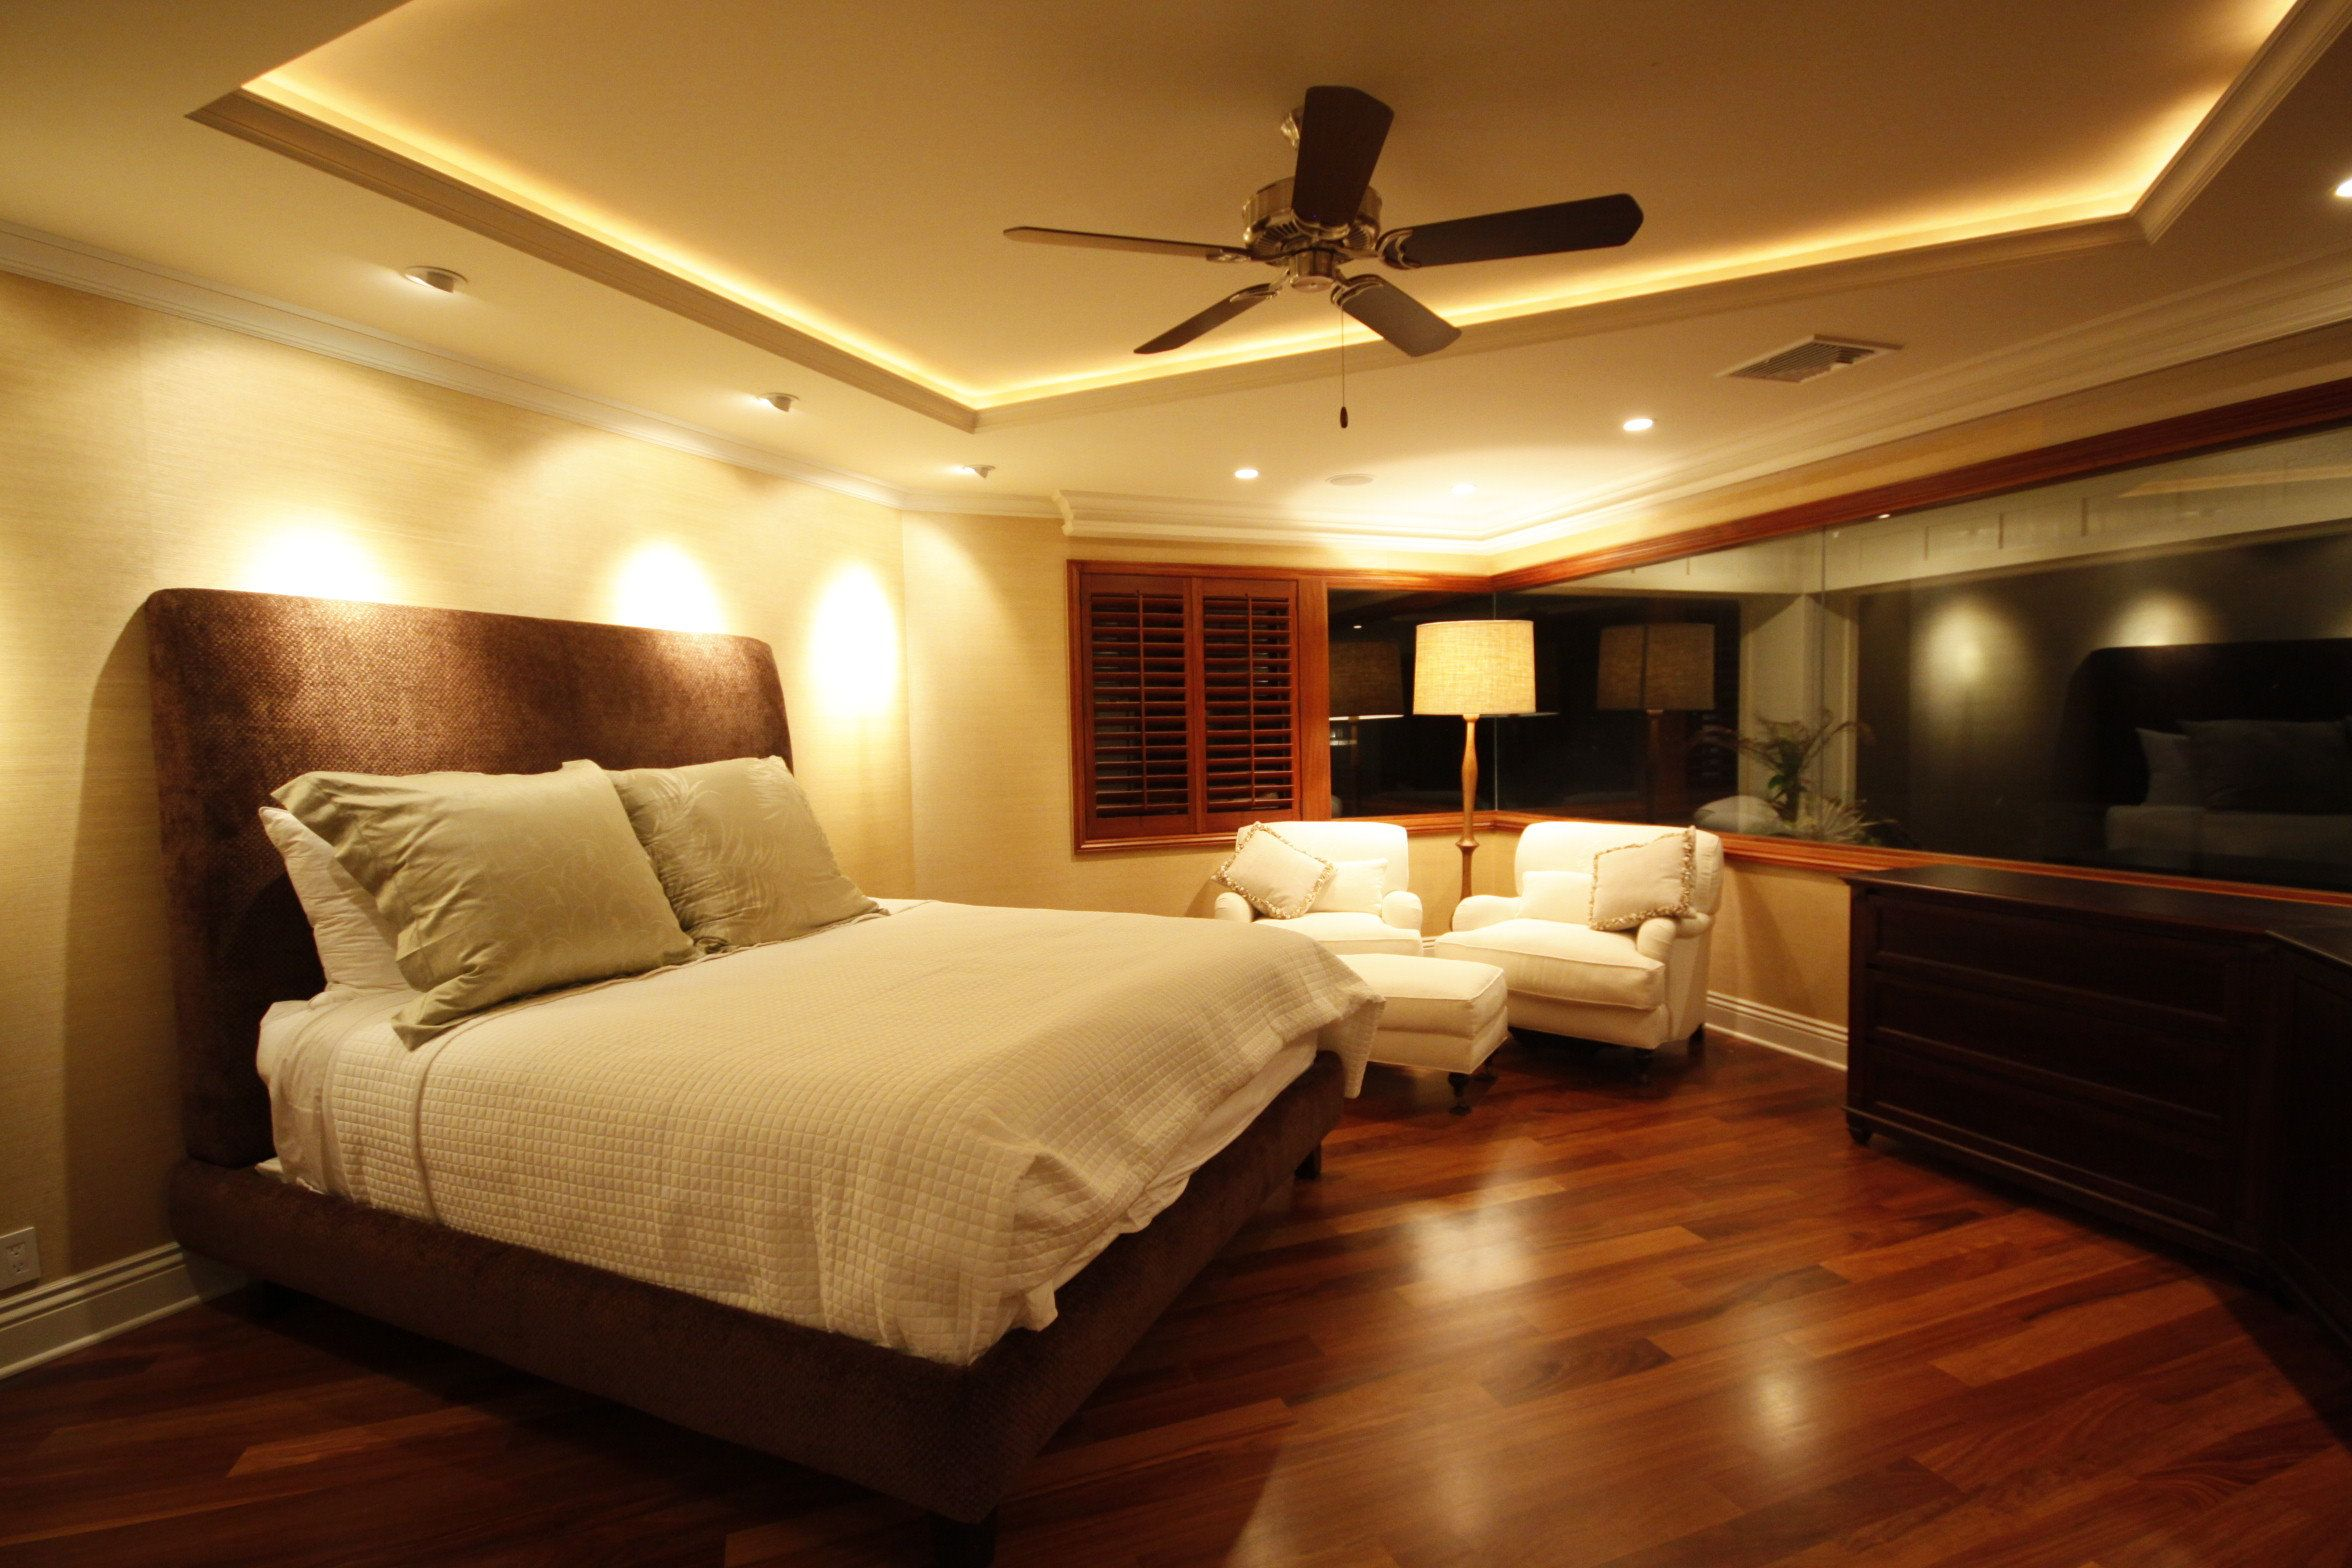 Appealing master bedroom modern decor with wooden floors for Designs of master bedroom